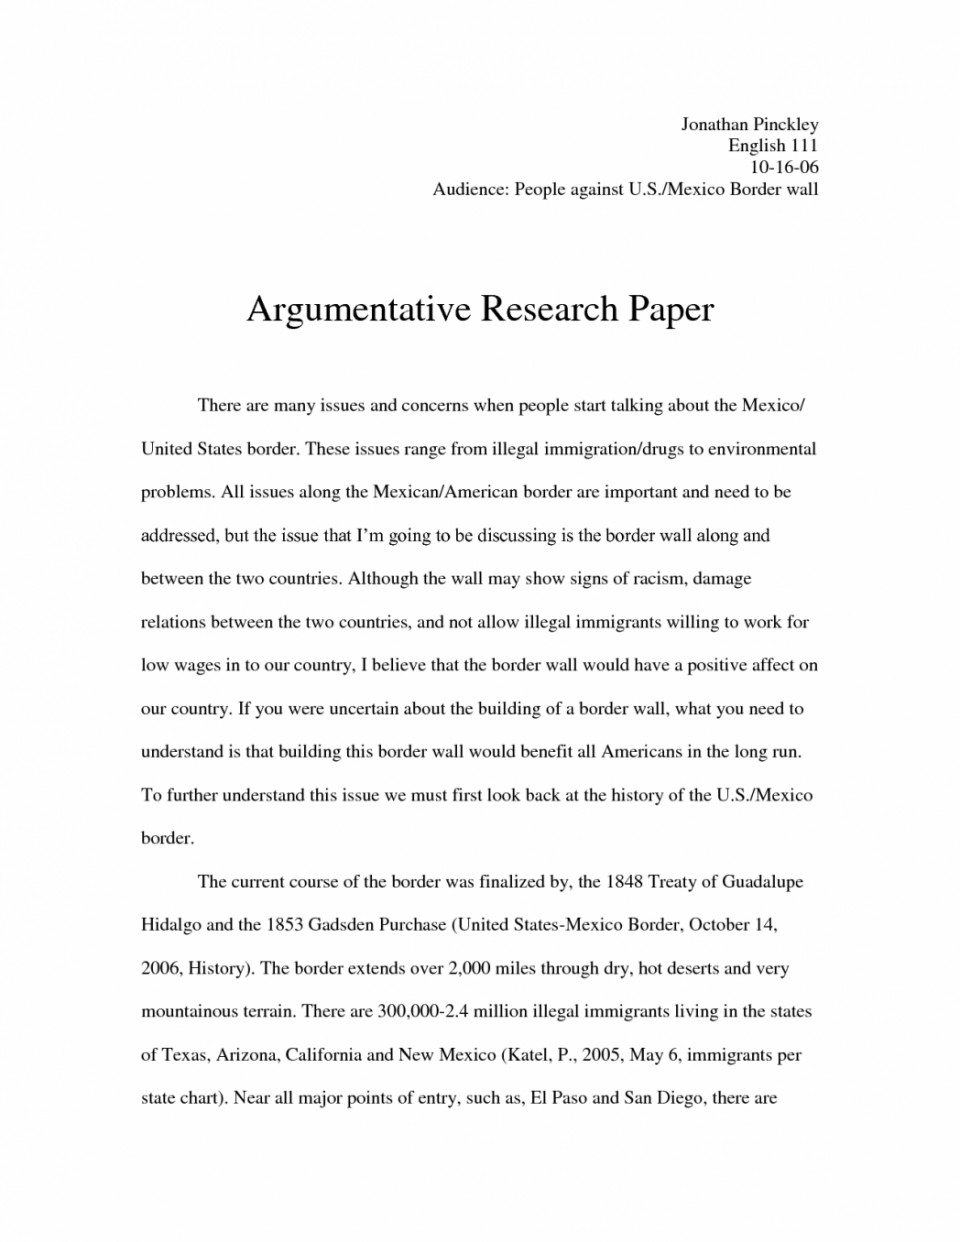 004 Argumentative Essay On Illegal Immigration Argument Research Persuasive Why Is Good Pgune Reform In America Topics Control Pro Thesis Rights 1048x1356 Exceptional Conclusion 960